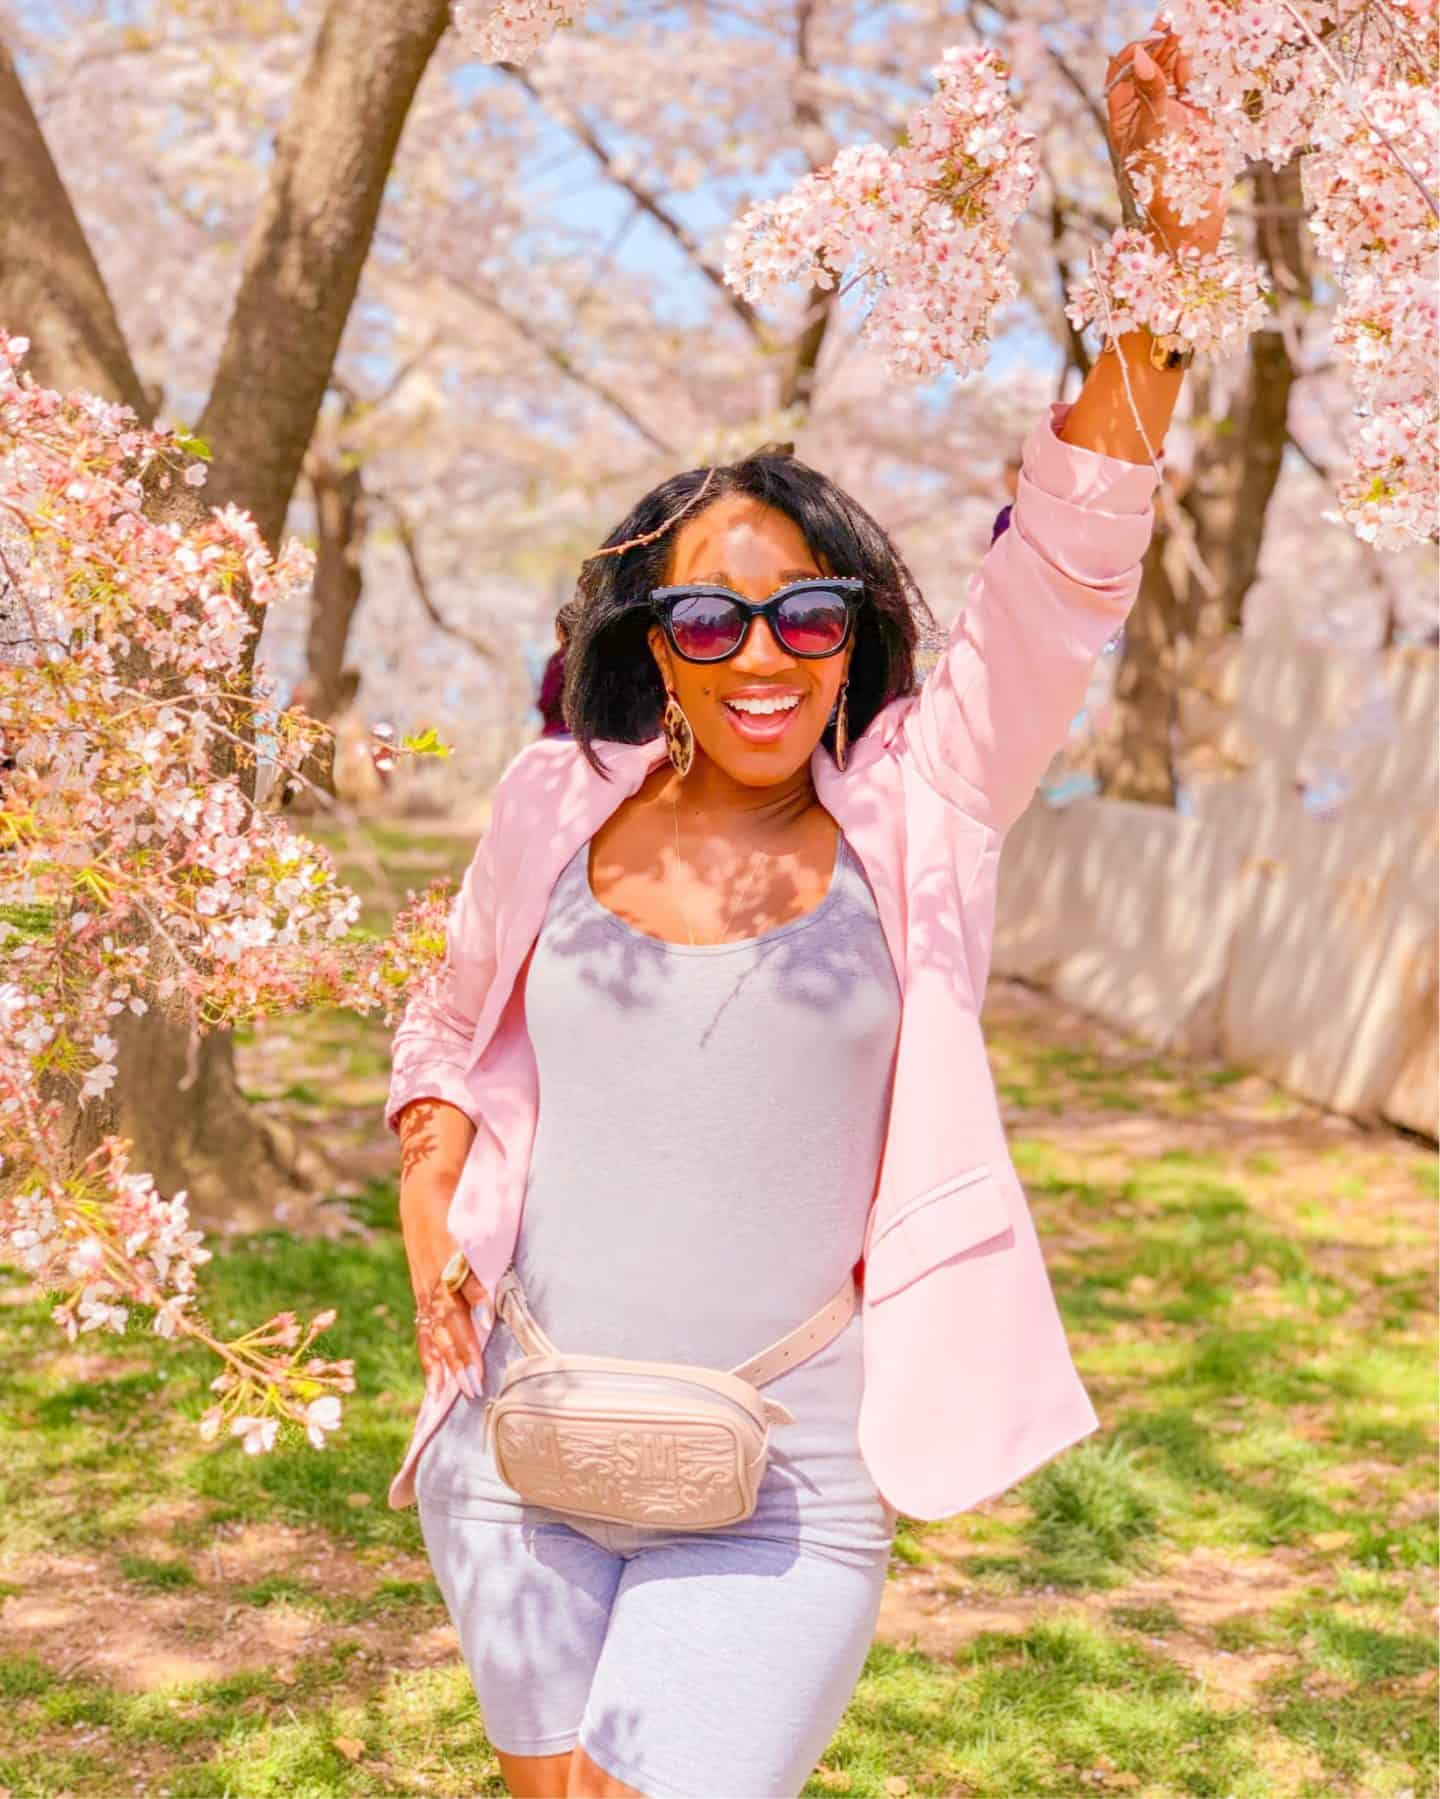 Shaunda Necole- The Secrets Instagram Influencers Use To Achieve Picture Perfect Poses- Even In Poor Lighting- Lightroom app